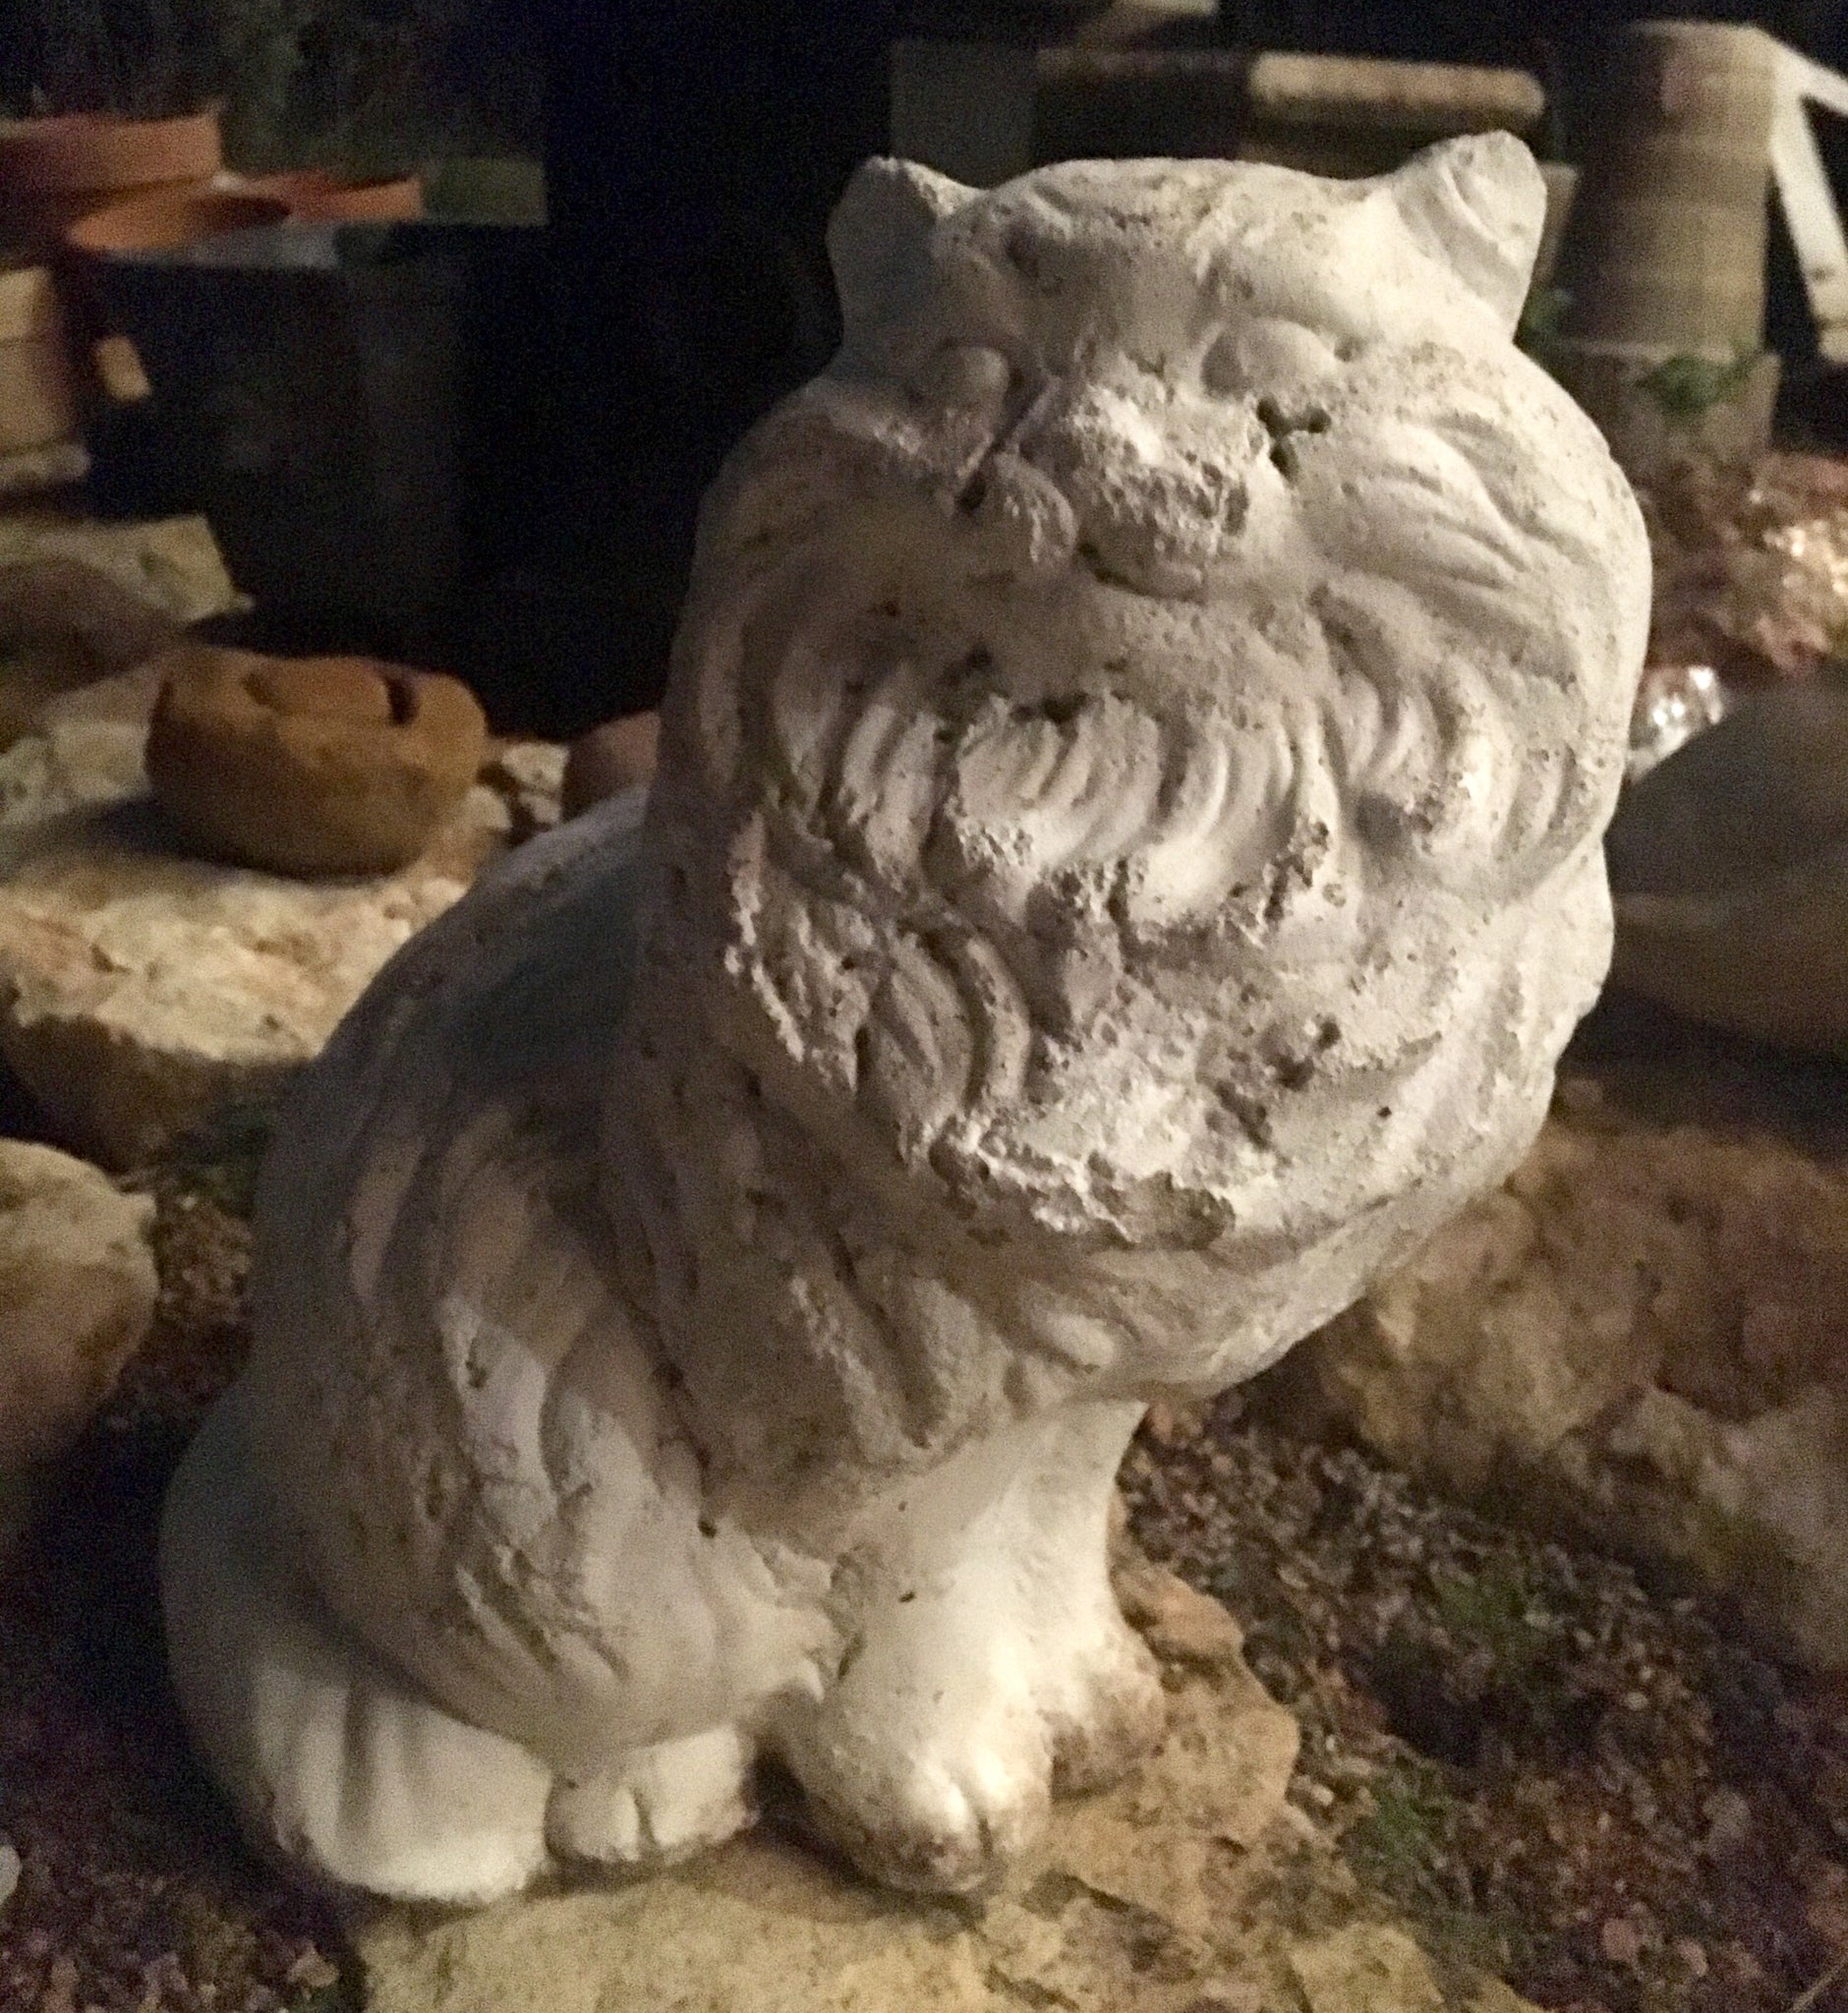 Heavy White Concrete Long-Haired Cat Statue